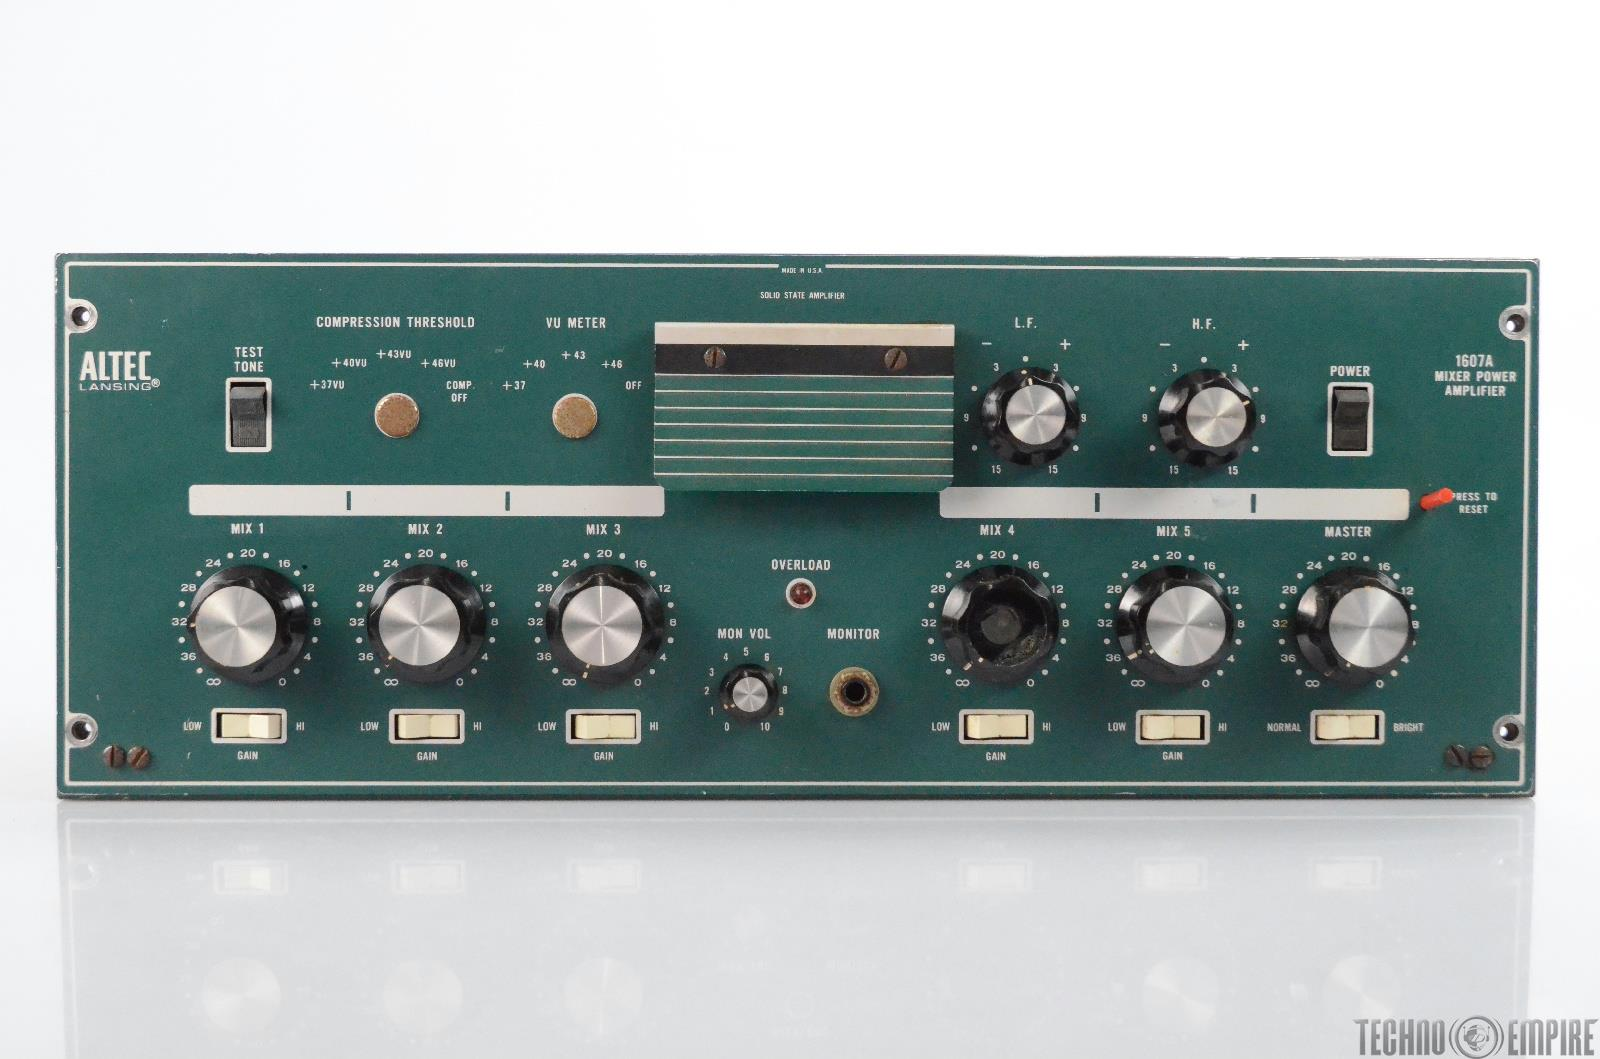 Altec Lansing 1607A Solid State Mixer Power Amplifier 1607 A #31041